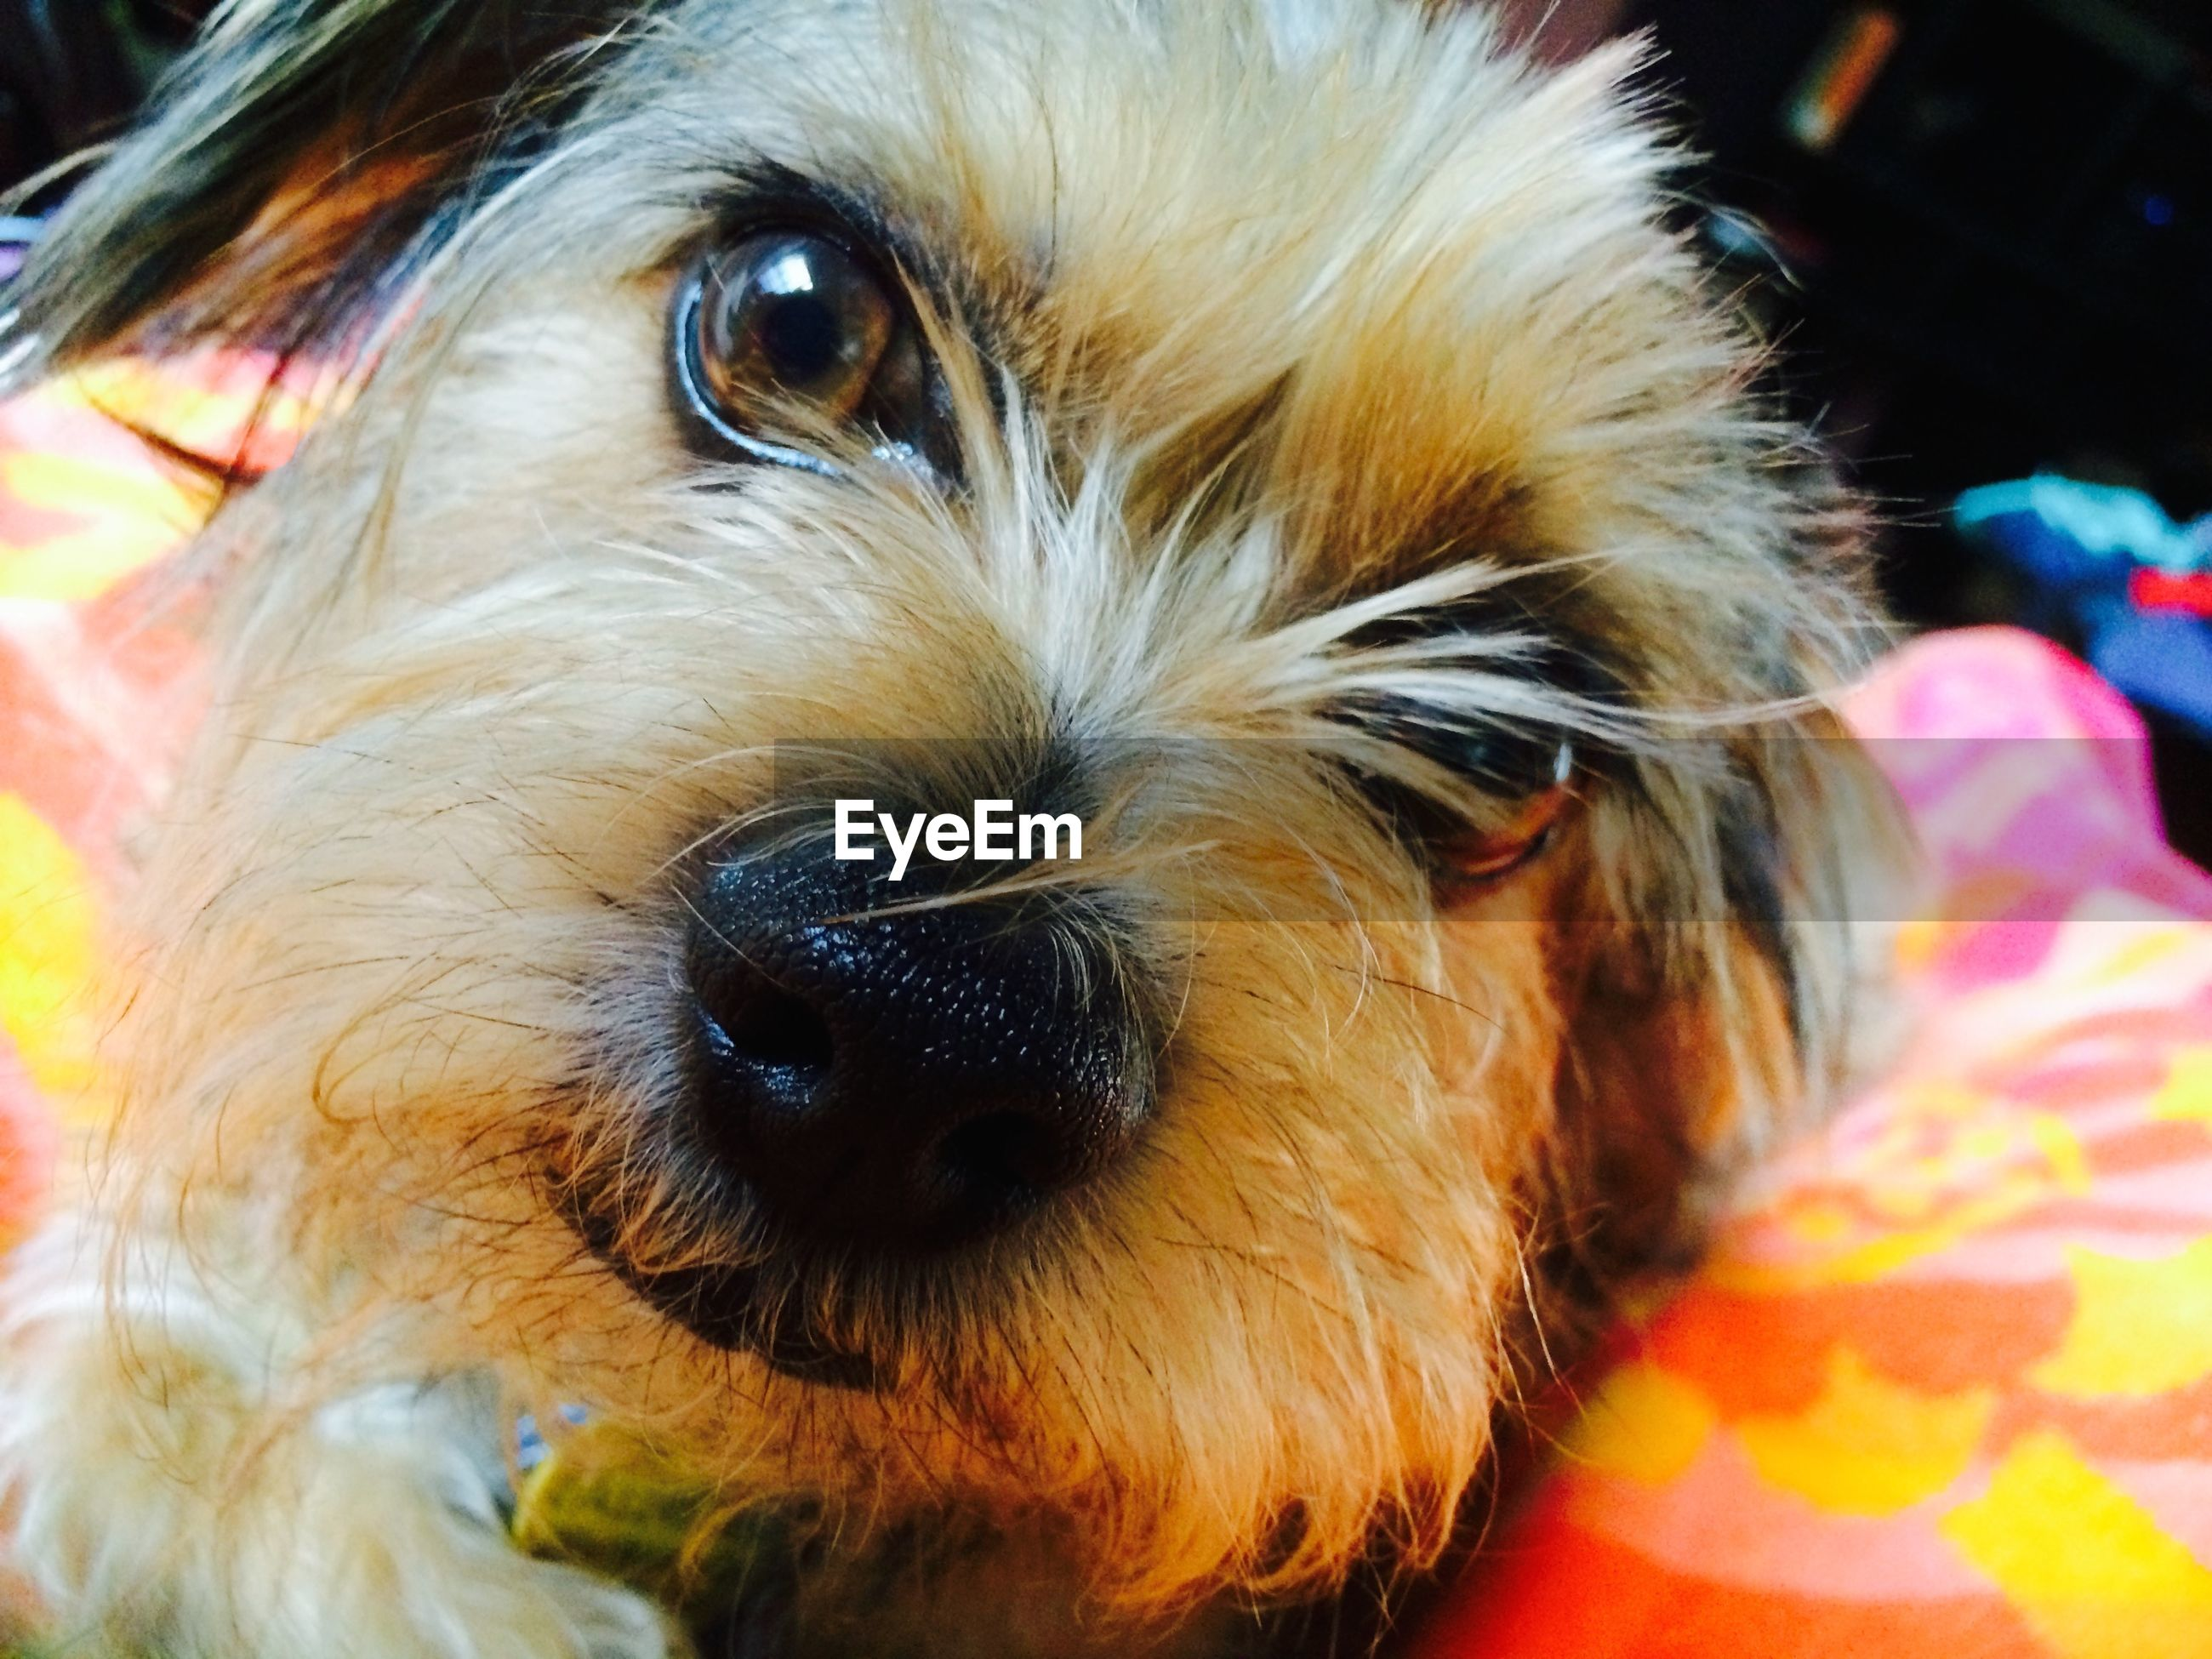 dog, pets, domestic animals, one animal, animal themes, mammal, close-up, indoors, animal head, animal body part, snout, portrait, looking at camera, animal hair, animal nose, relaxation, pampered pets, loyalty, no people, canine